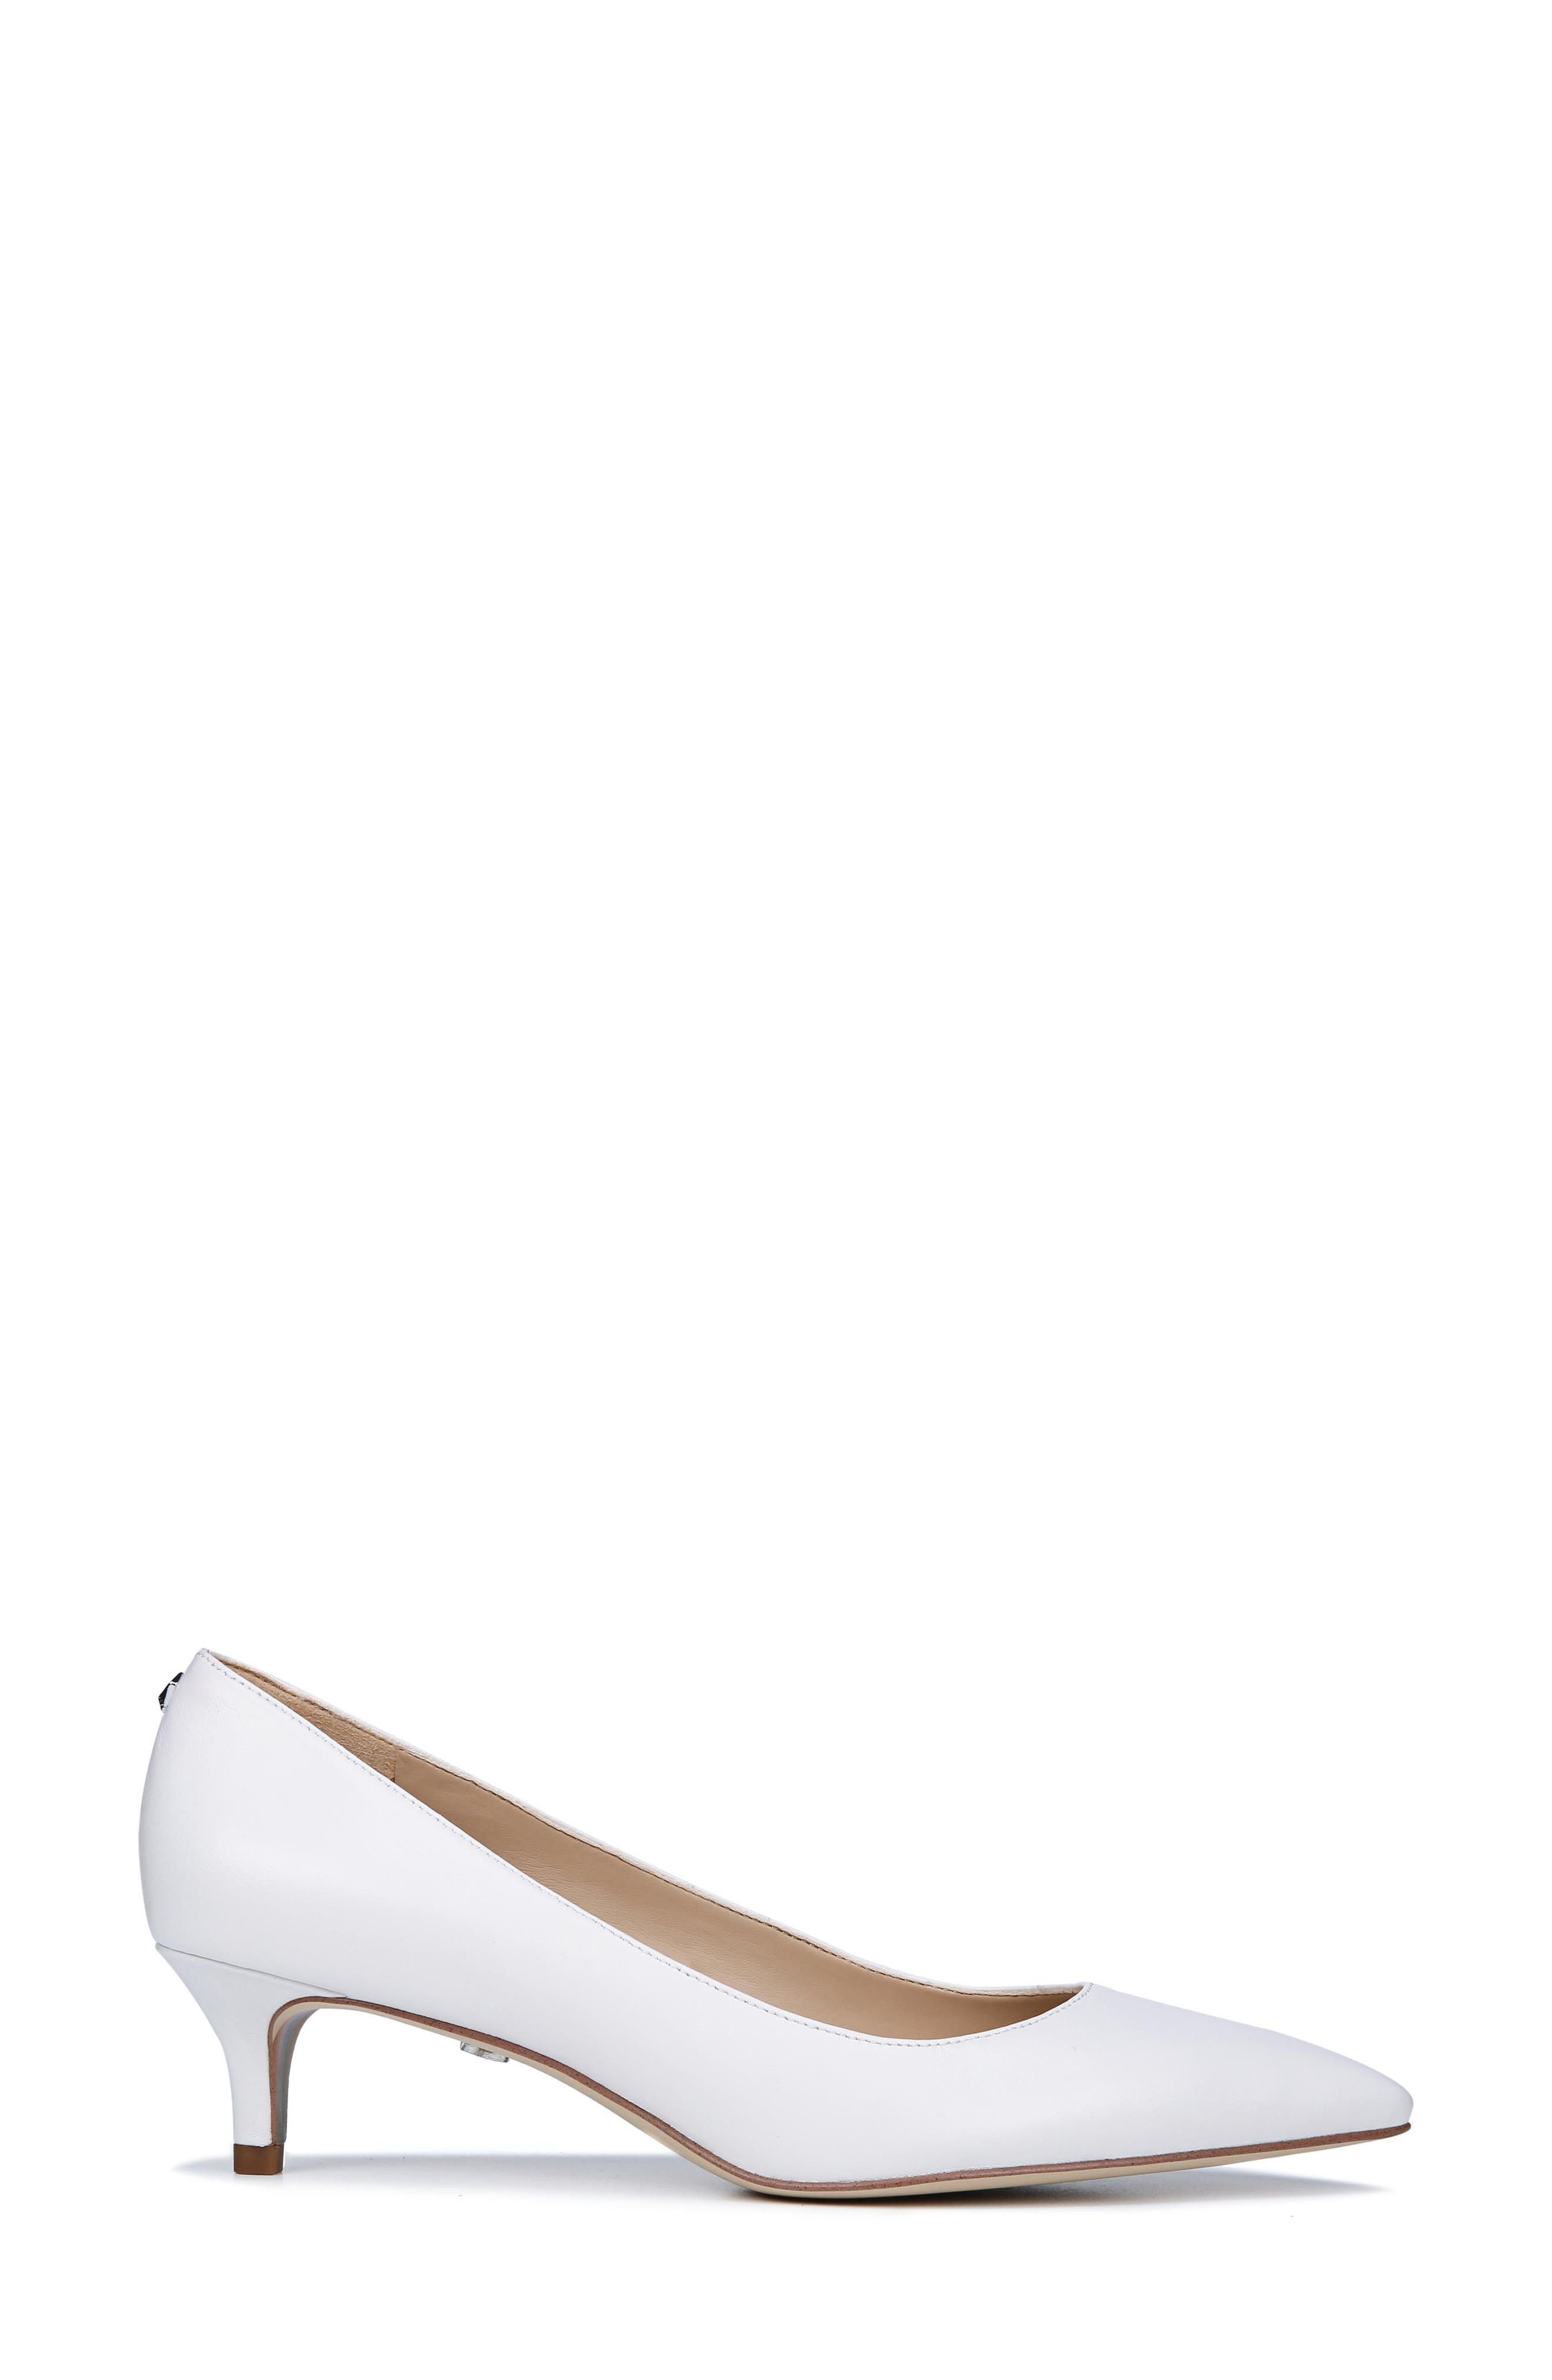 Dori Pump,                             Alternate thumbnail 3, color,                             BRIGHT WHITE LEATHER